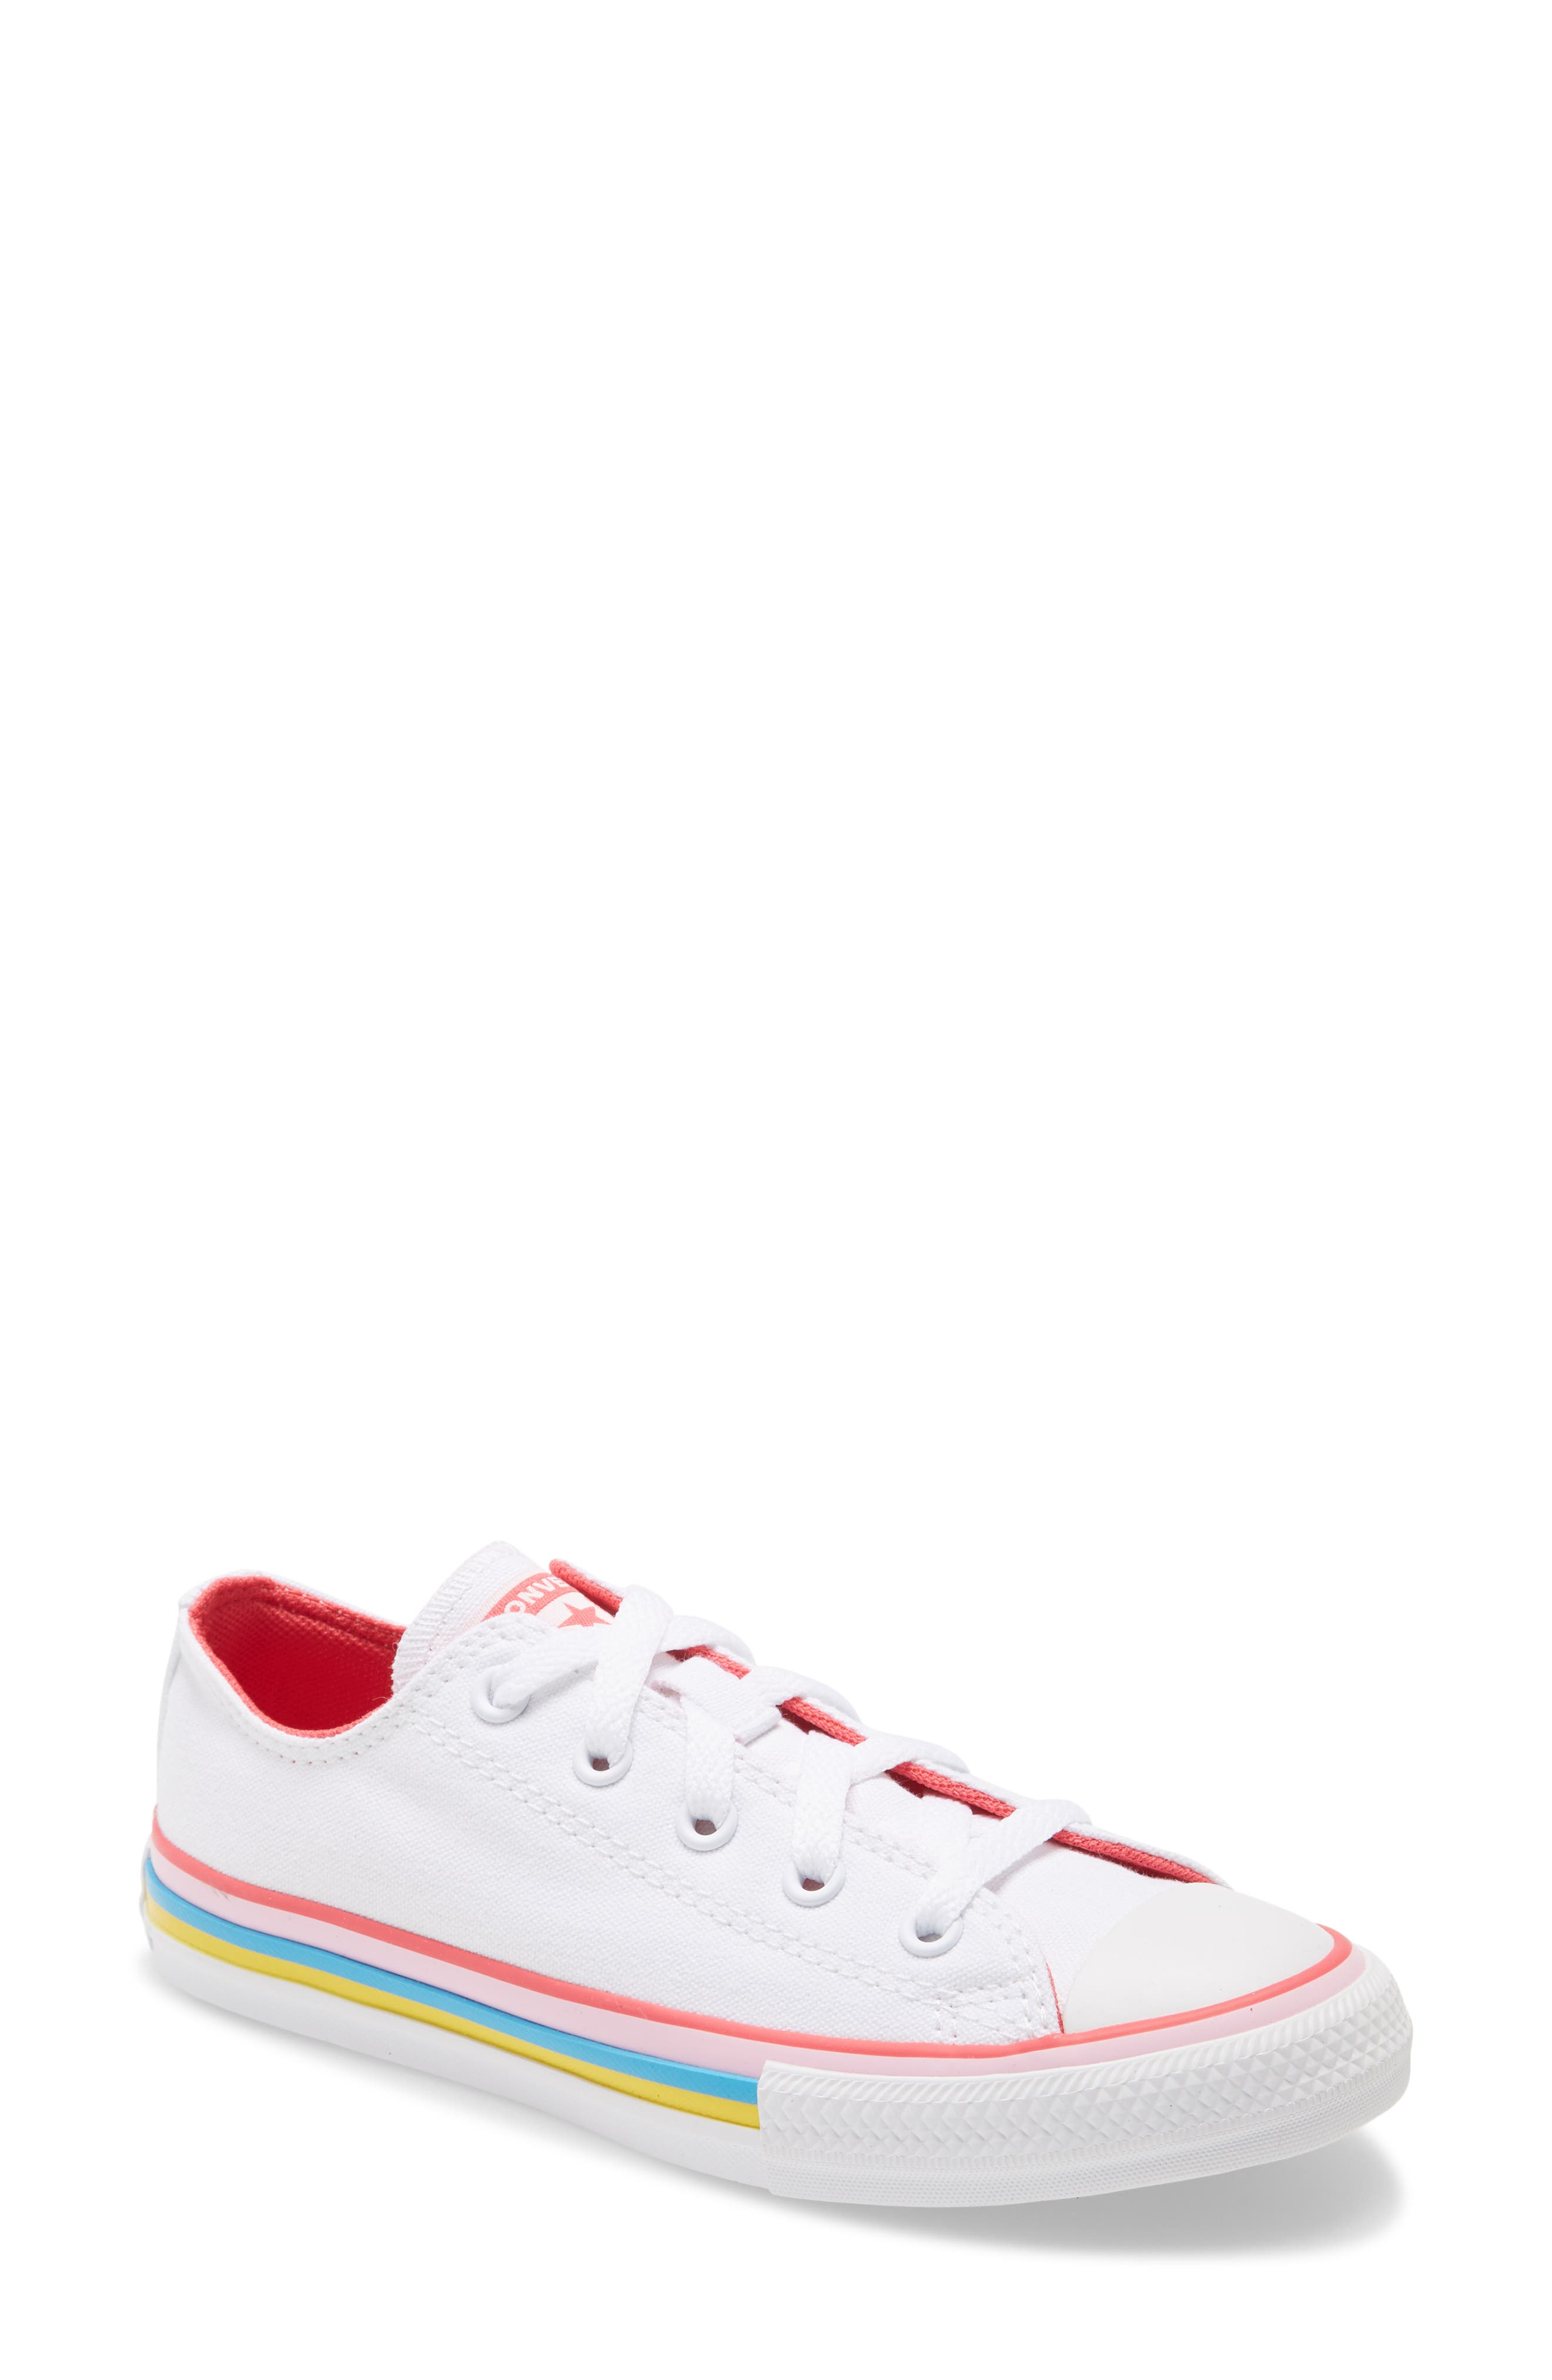 Image of Converse Chuck Taylor All Star Sneaker